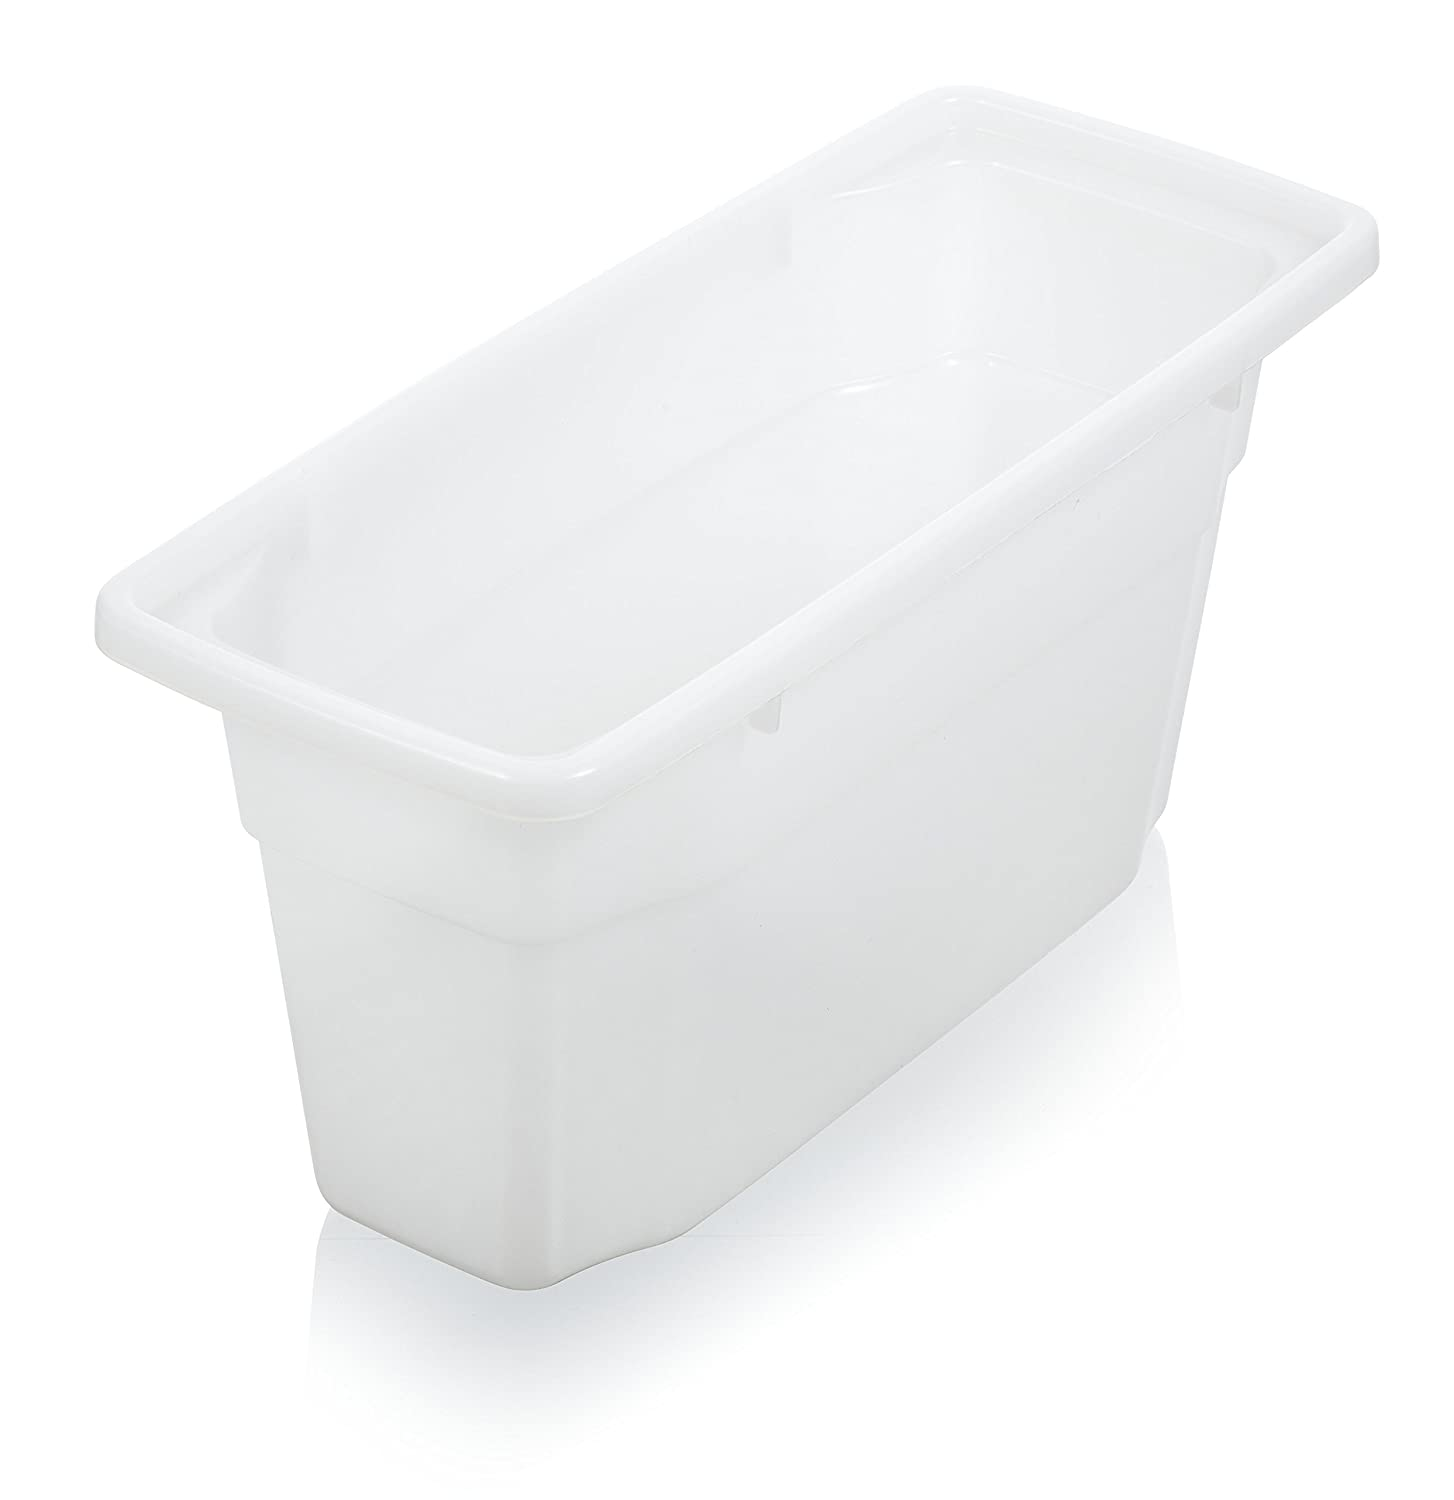 Arrow Home Products 00054 Eezy Plastic Ice Bin, White